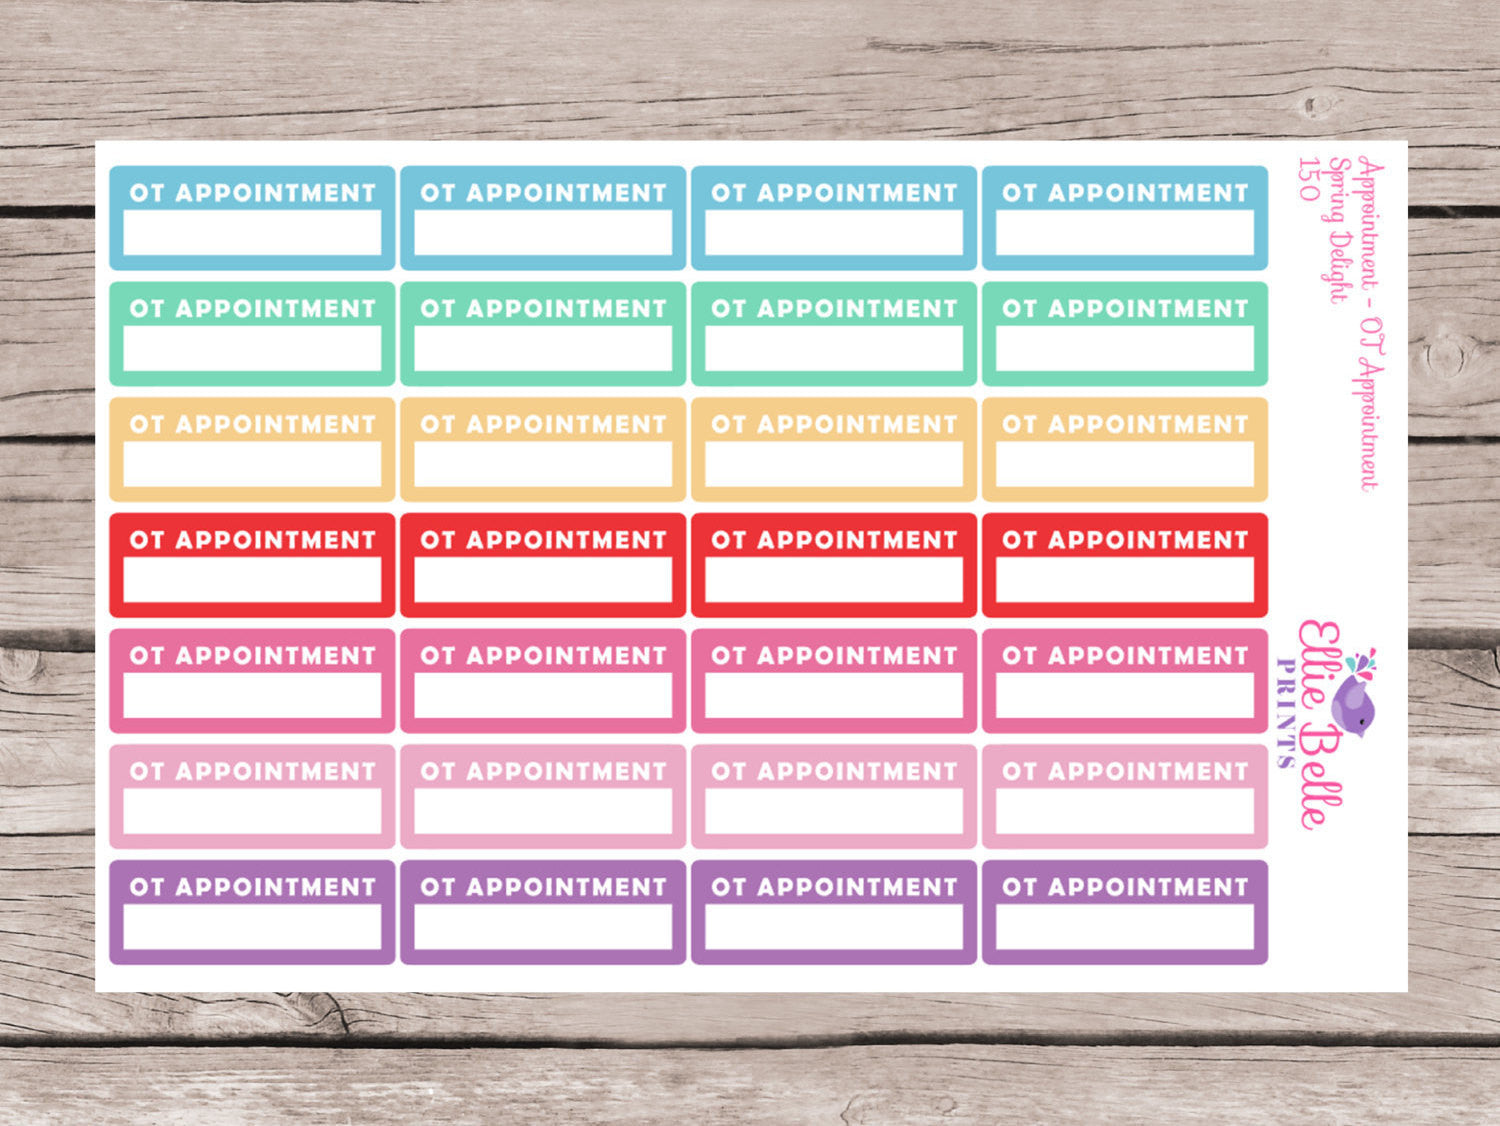 Occupational Therapy Planner Sticker (OT Appointment) - Spring Delight [150]